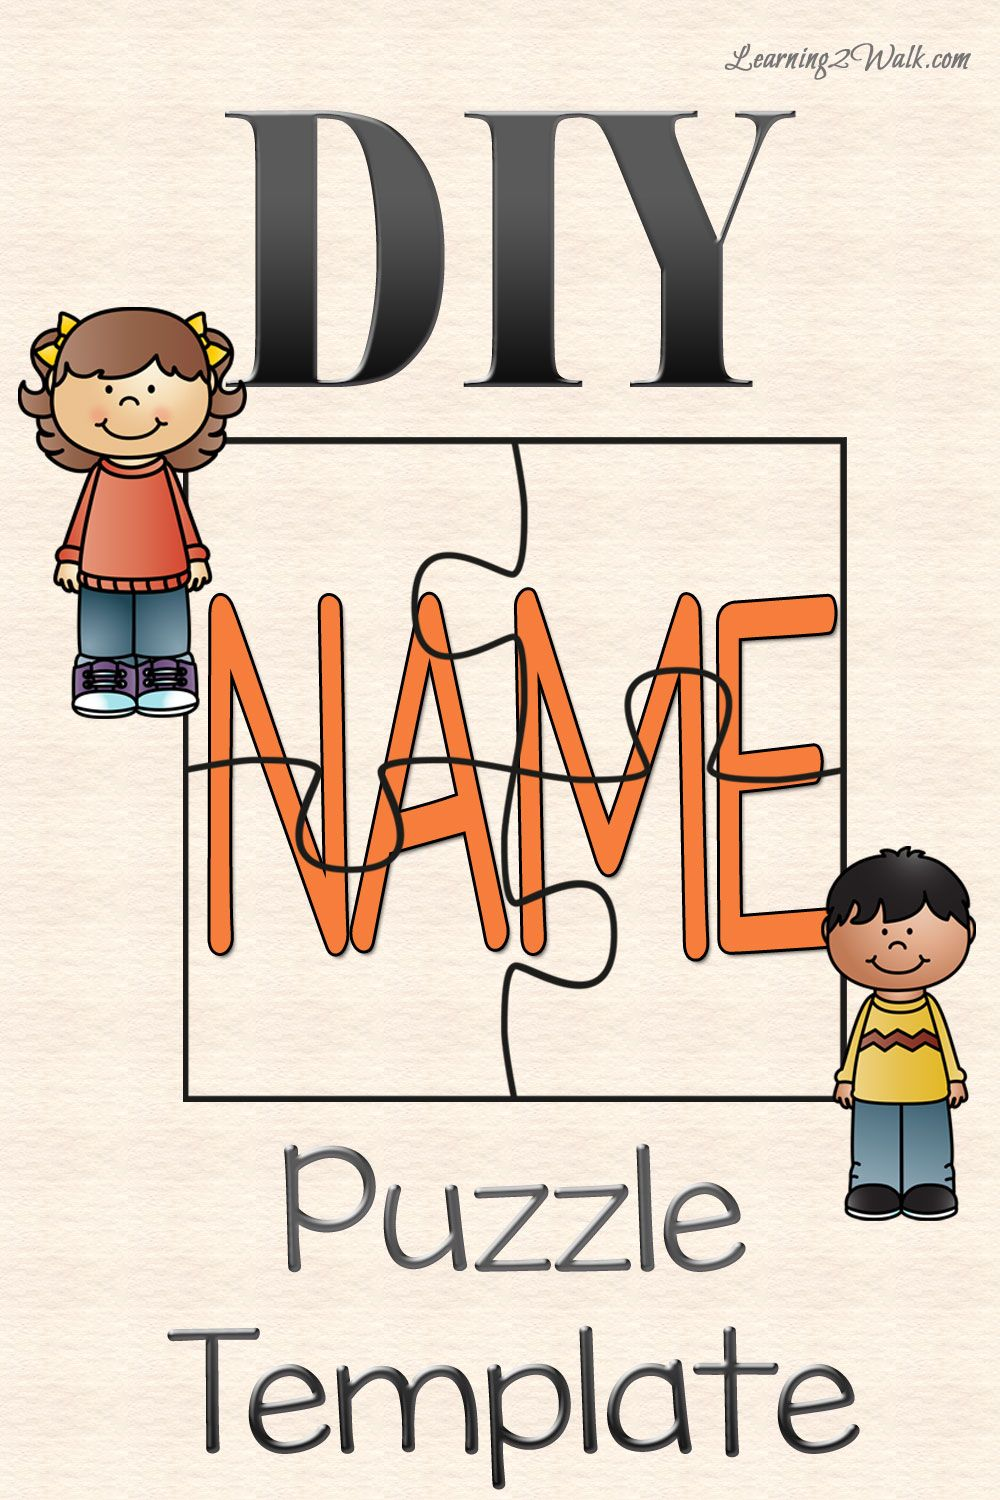 image regarding Name Puzzle Printable identified as Do-it-yourself Track record PUZZLE TEMPLATE preschool Preschool names, All